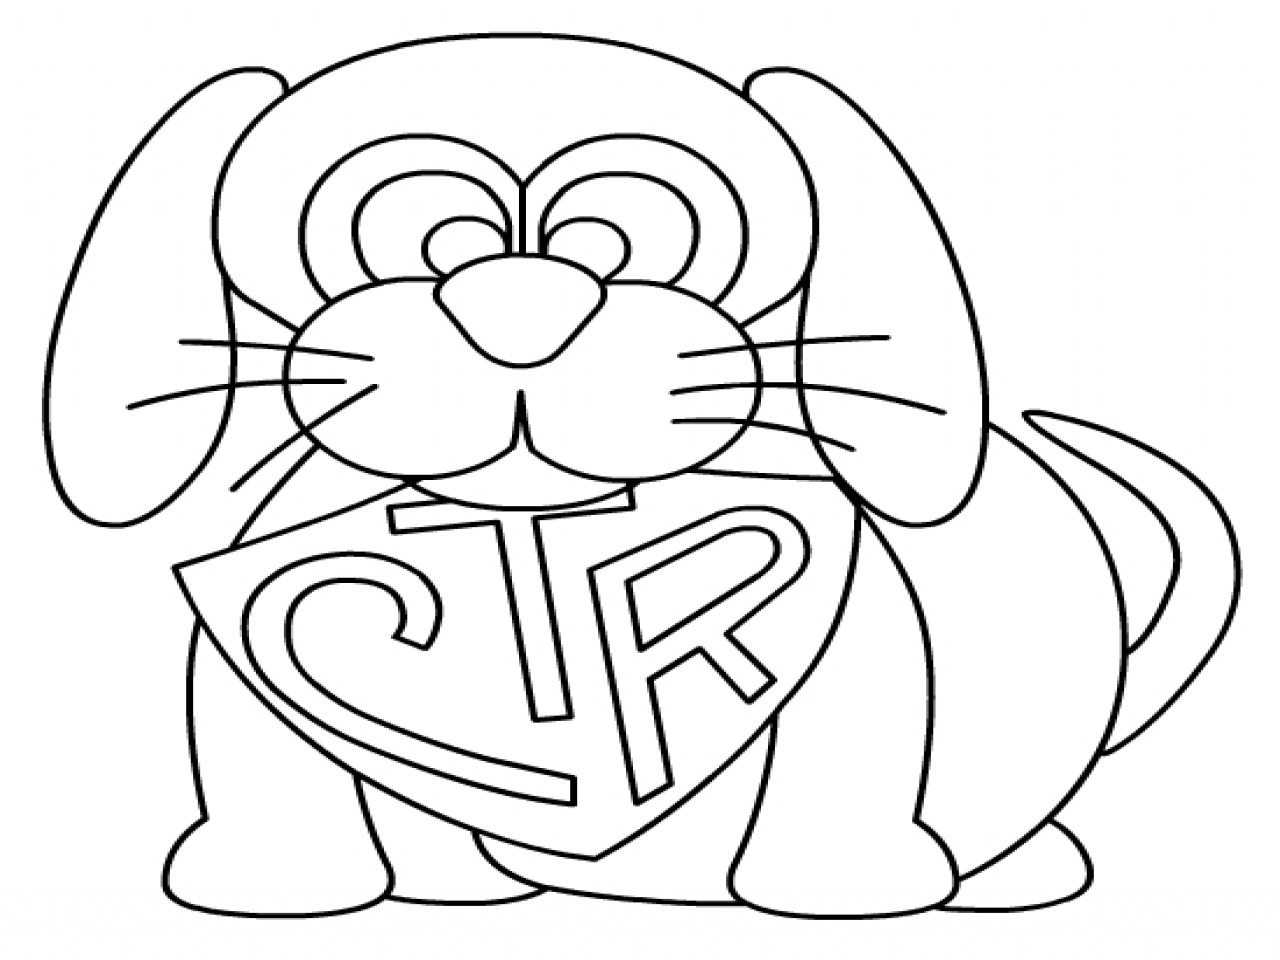 Ctr Shield Coloring Page Coloring, Lds Ctr Clip Art Coloring Pages